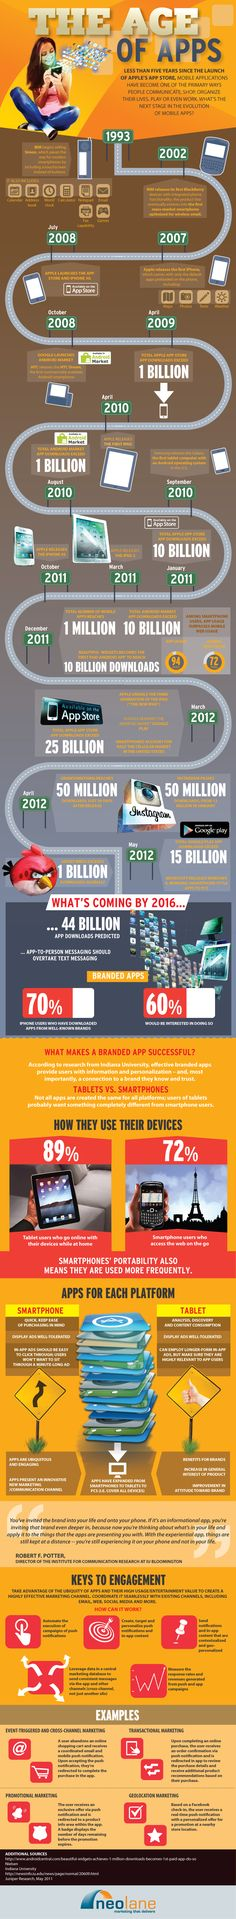 The Age of Apps: Evolution of the Mobile Application [Infographic]